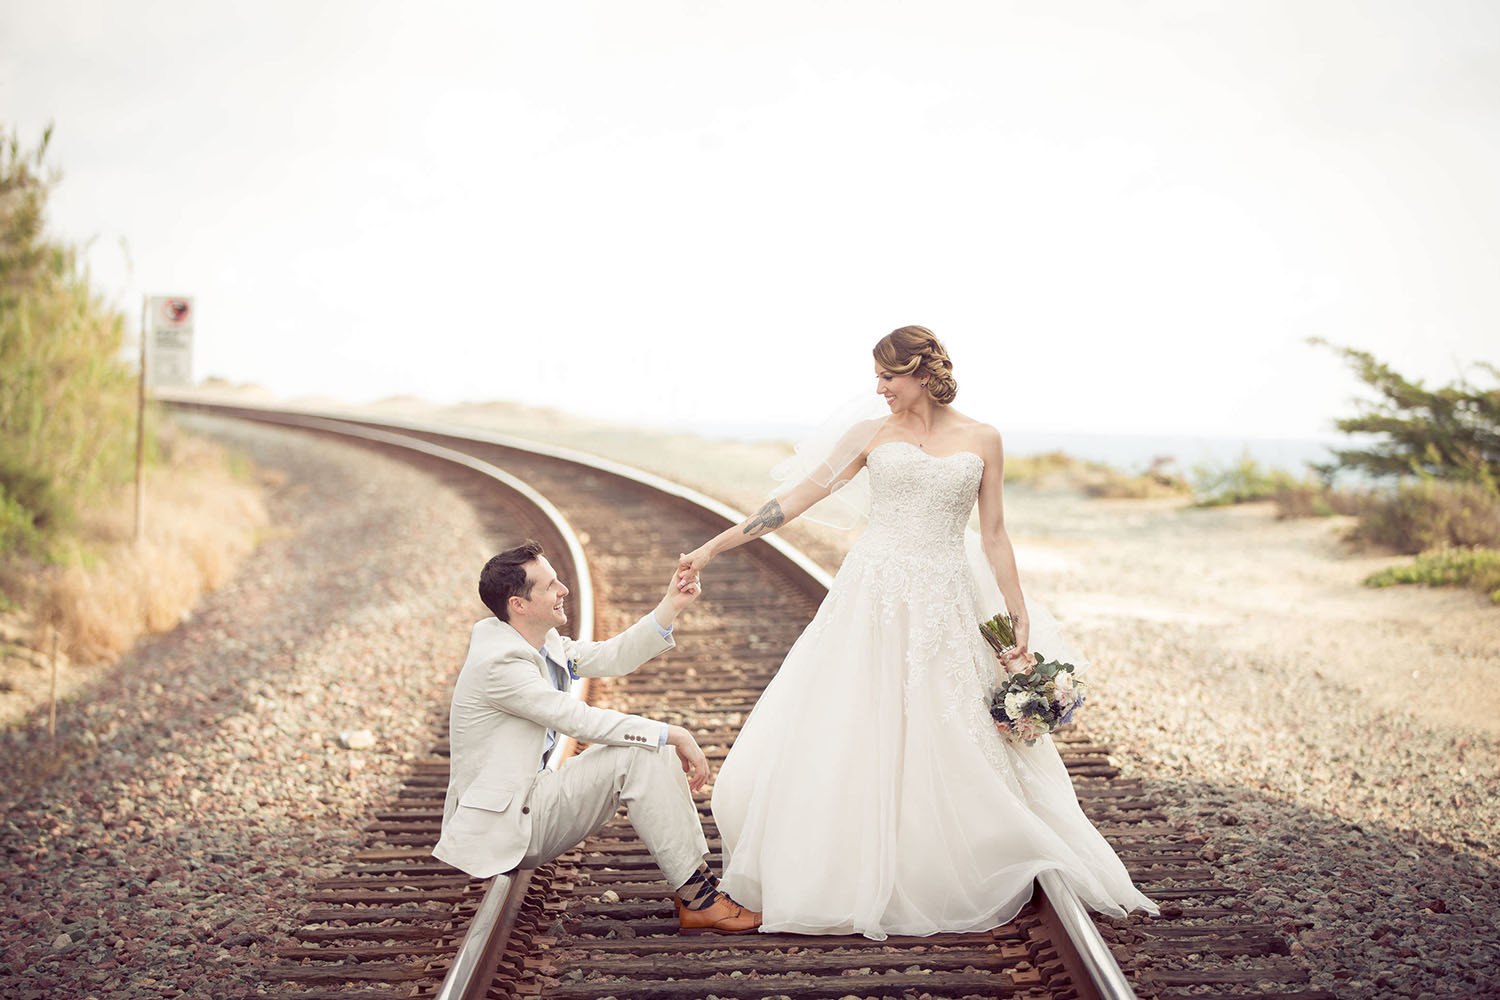 Cute pose for bride and groom